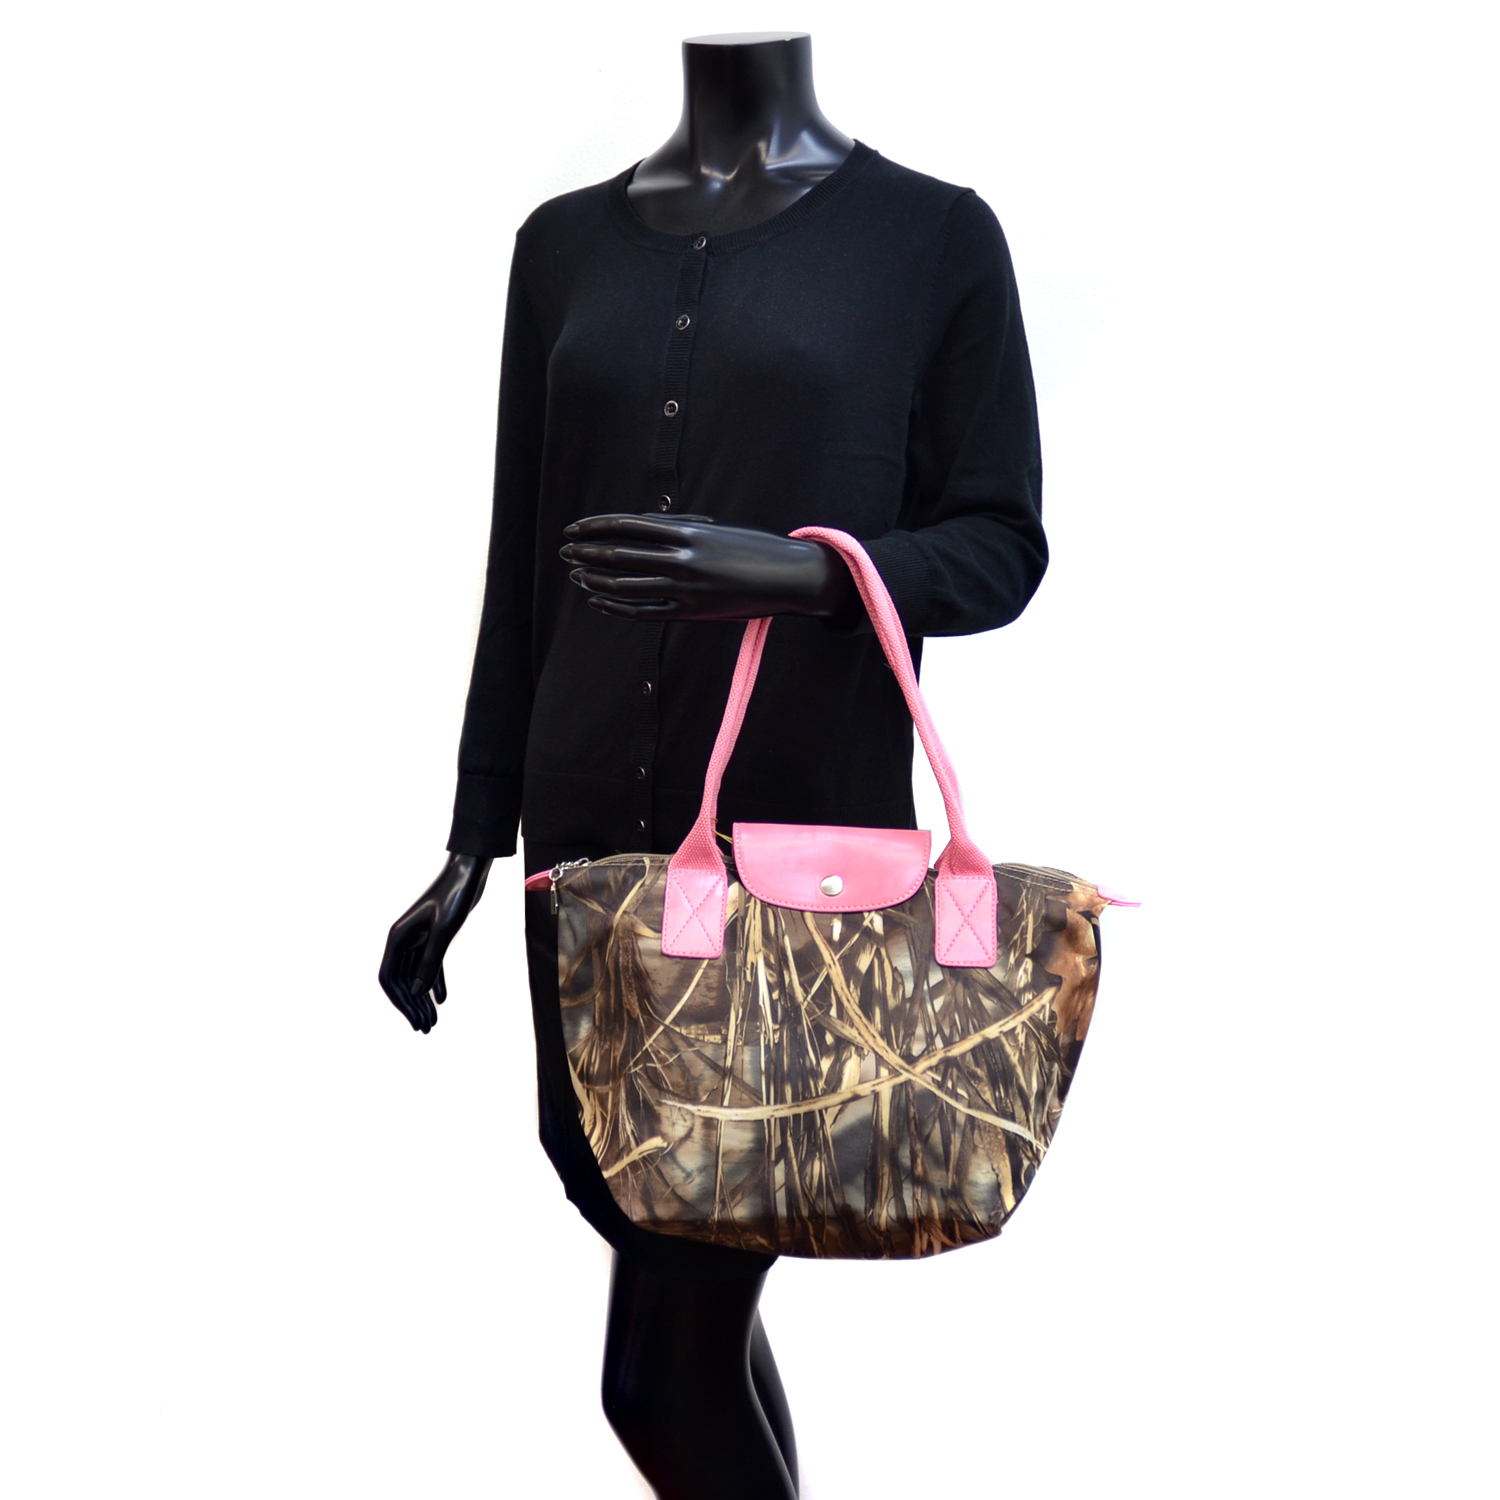 Realtree ® Faux Leather Trim Amouflage Shoulder Bag w/ Flapover Top Snap Closure